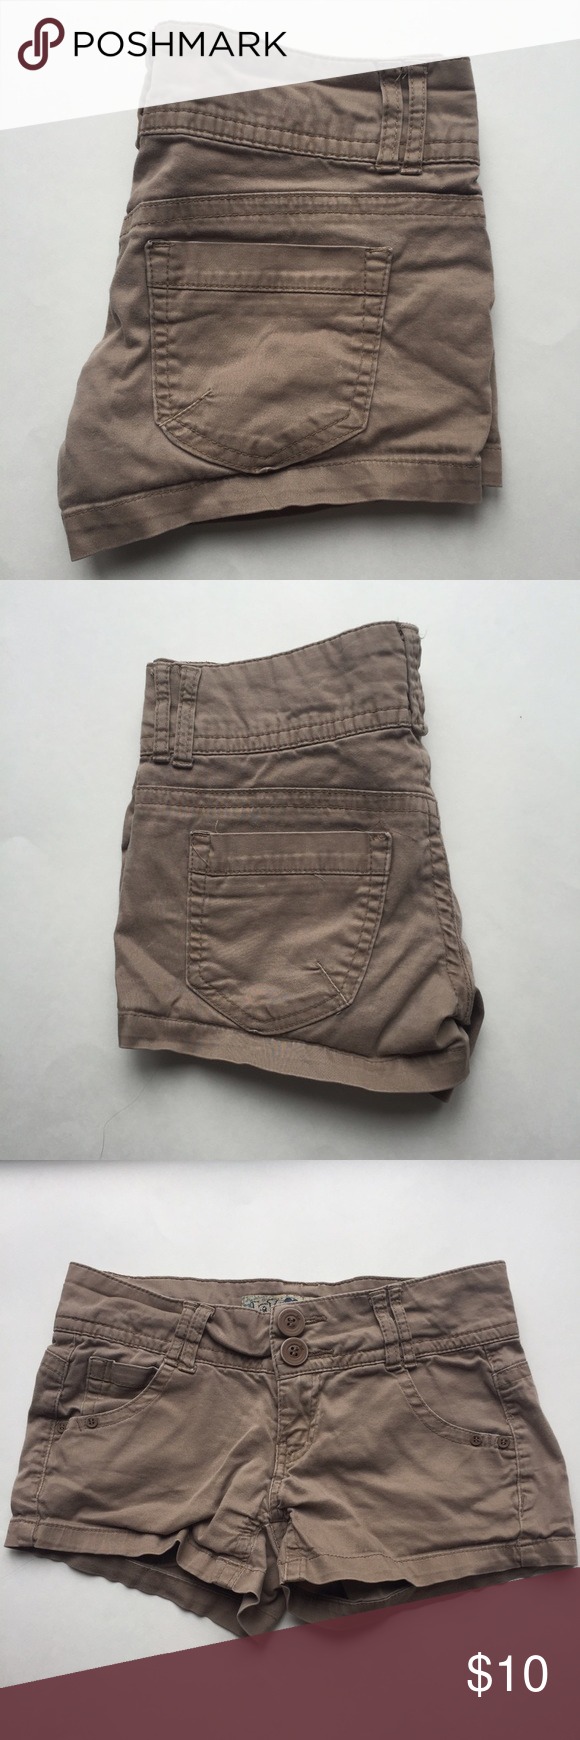 Khaki Jolt Shorts Size 3 Worn, but still in good condition with a lot of wear left in them. These run on the smaller side as Jolt is a juniors style brand. All sales final. Jolt Shorts